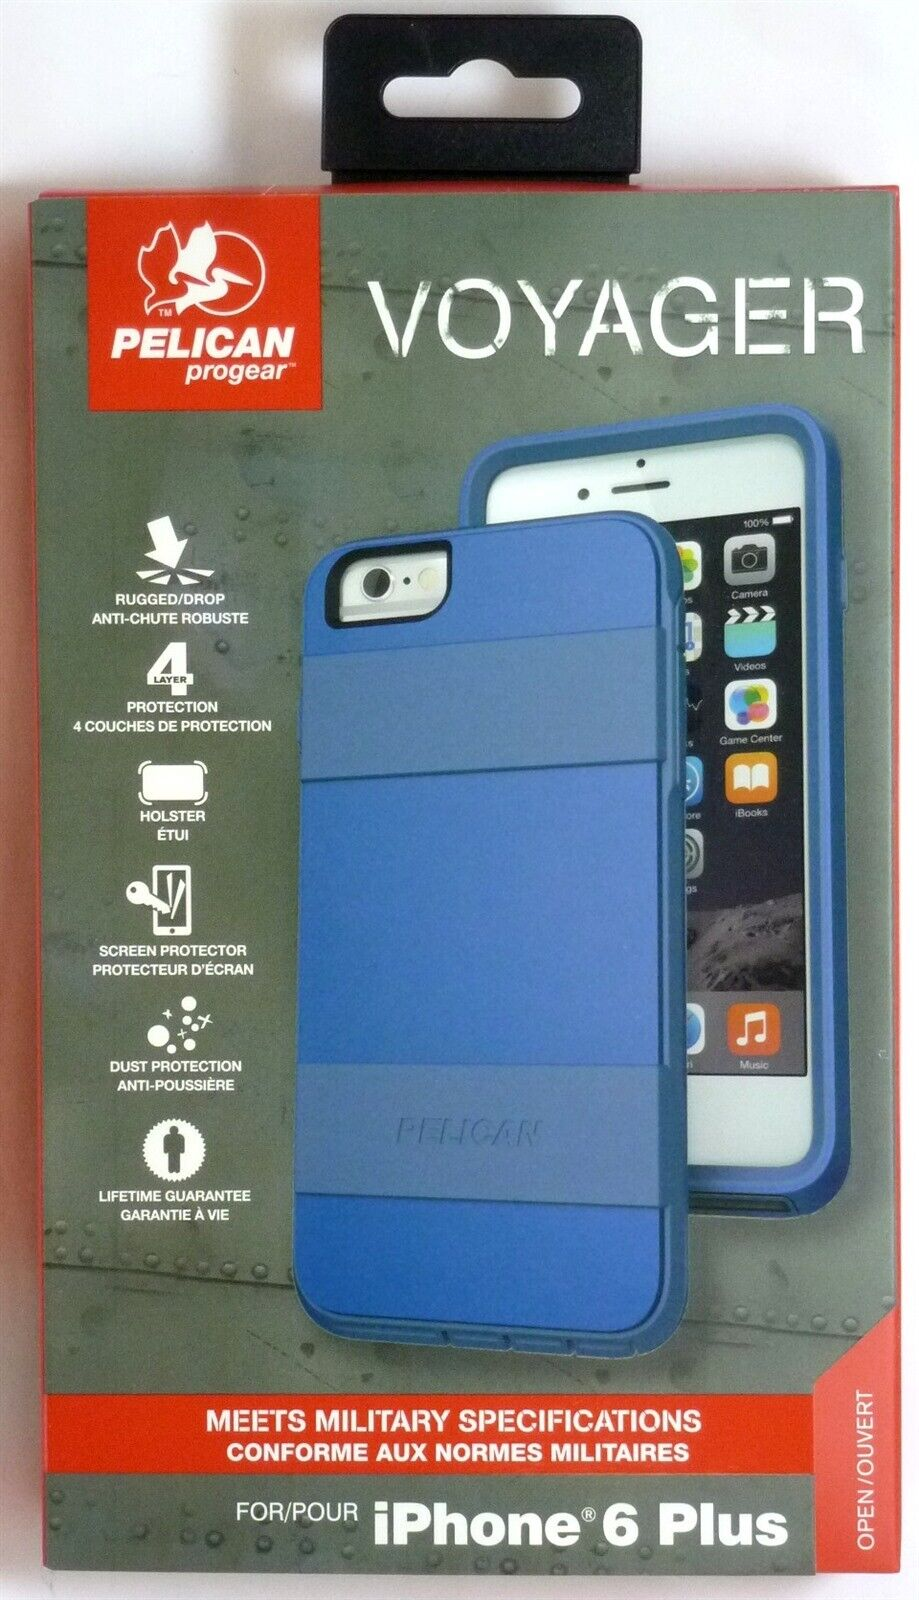 Pelican ProGear Voyager Phone Case + Kickstand for Apple iPh